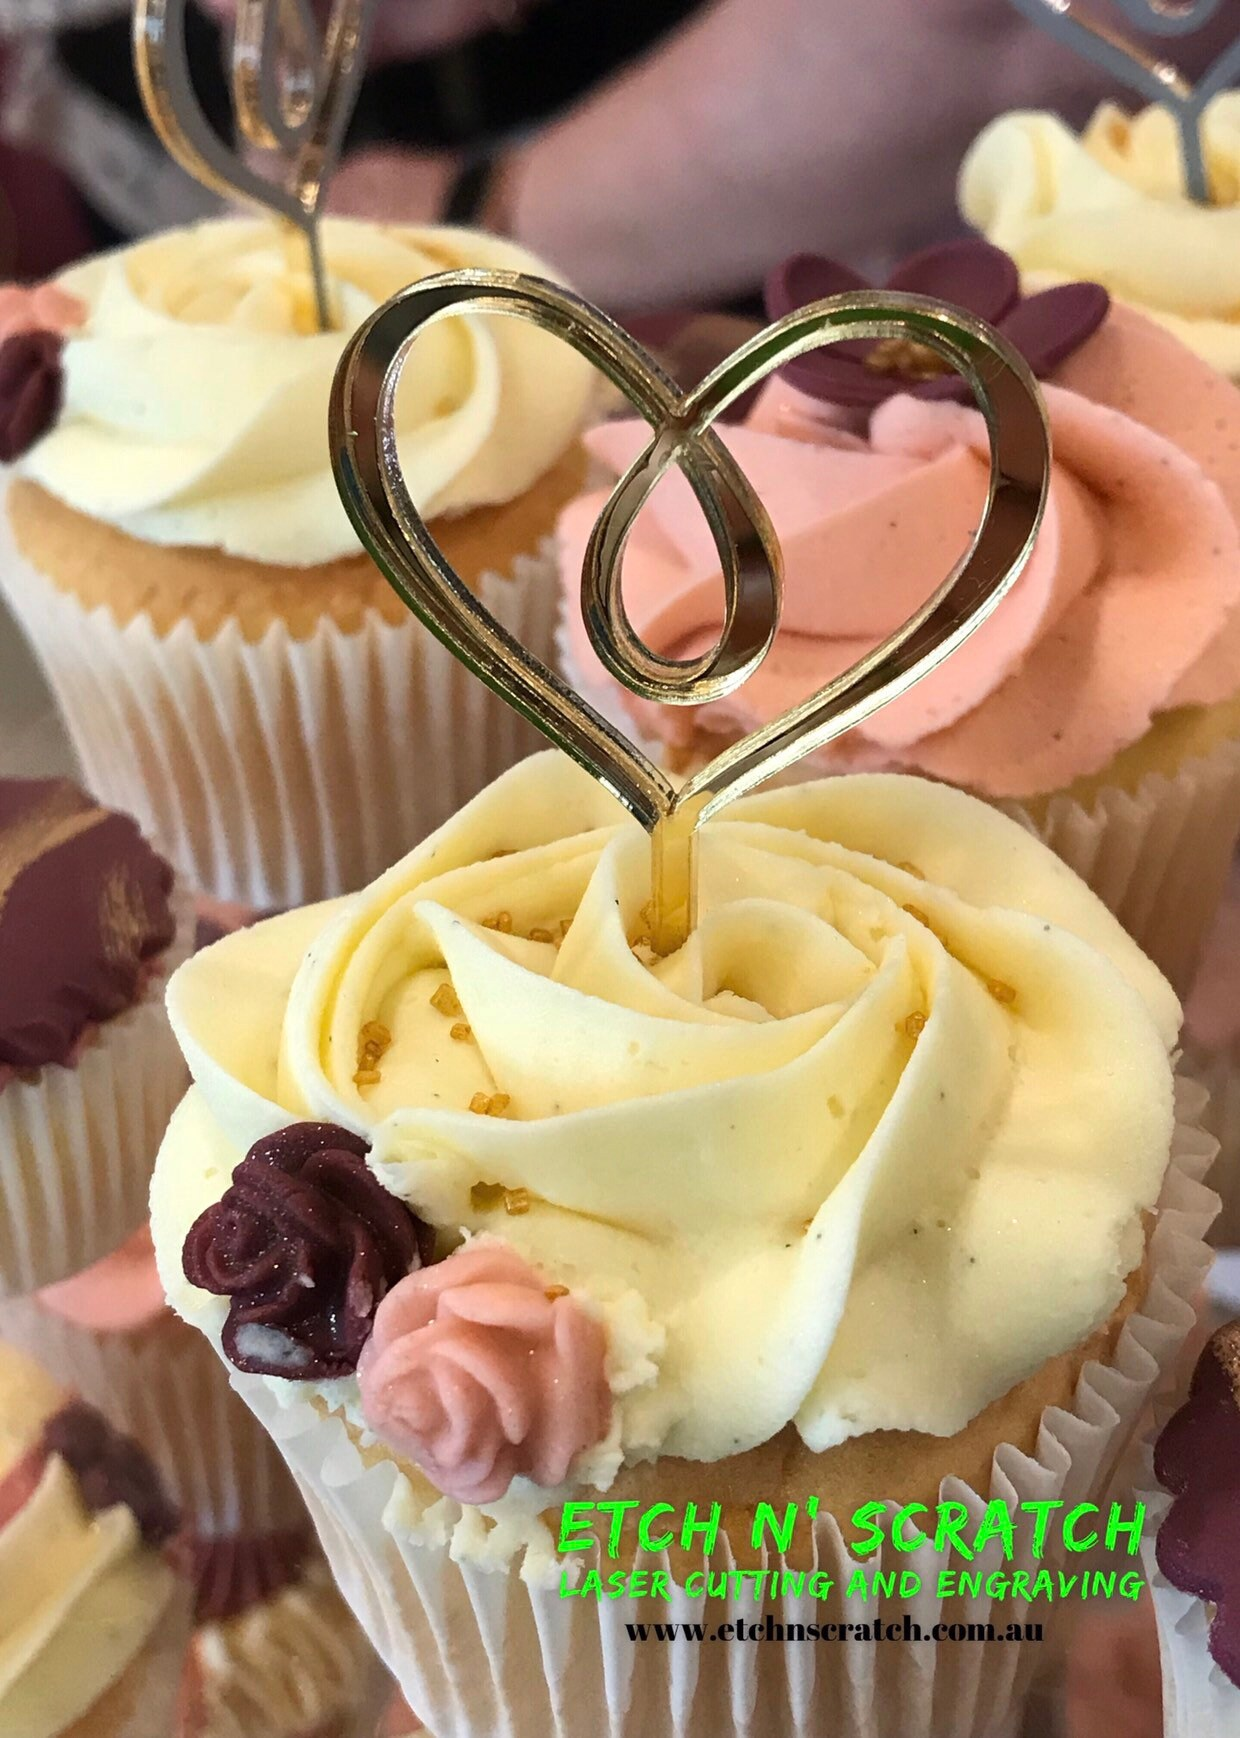 Laser Cut Heart Mirror Acrylic Cupcake Toppers For Small Cakes Or Cup Cakes